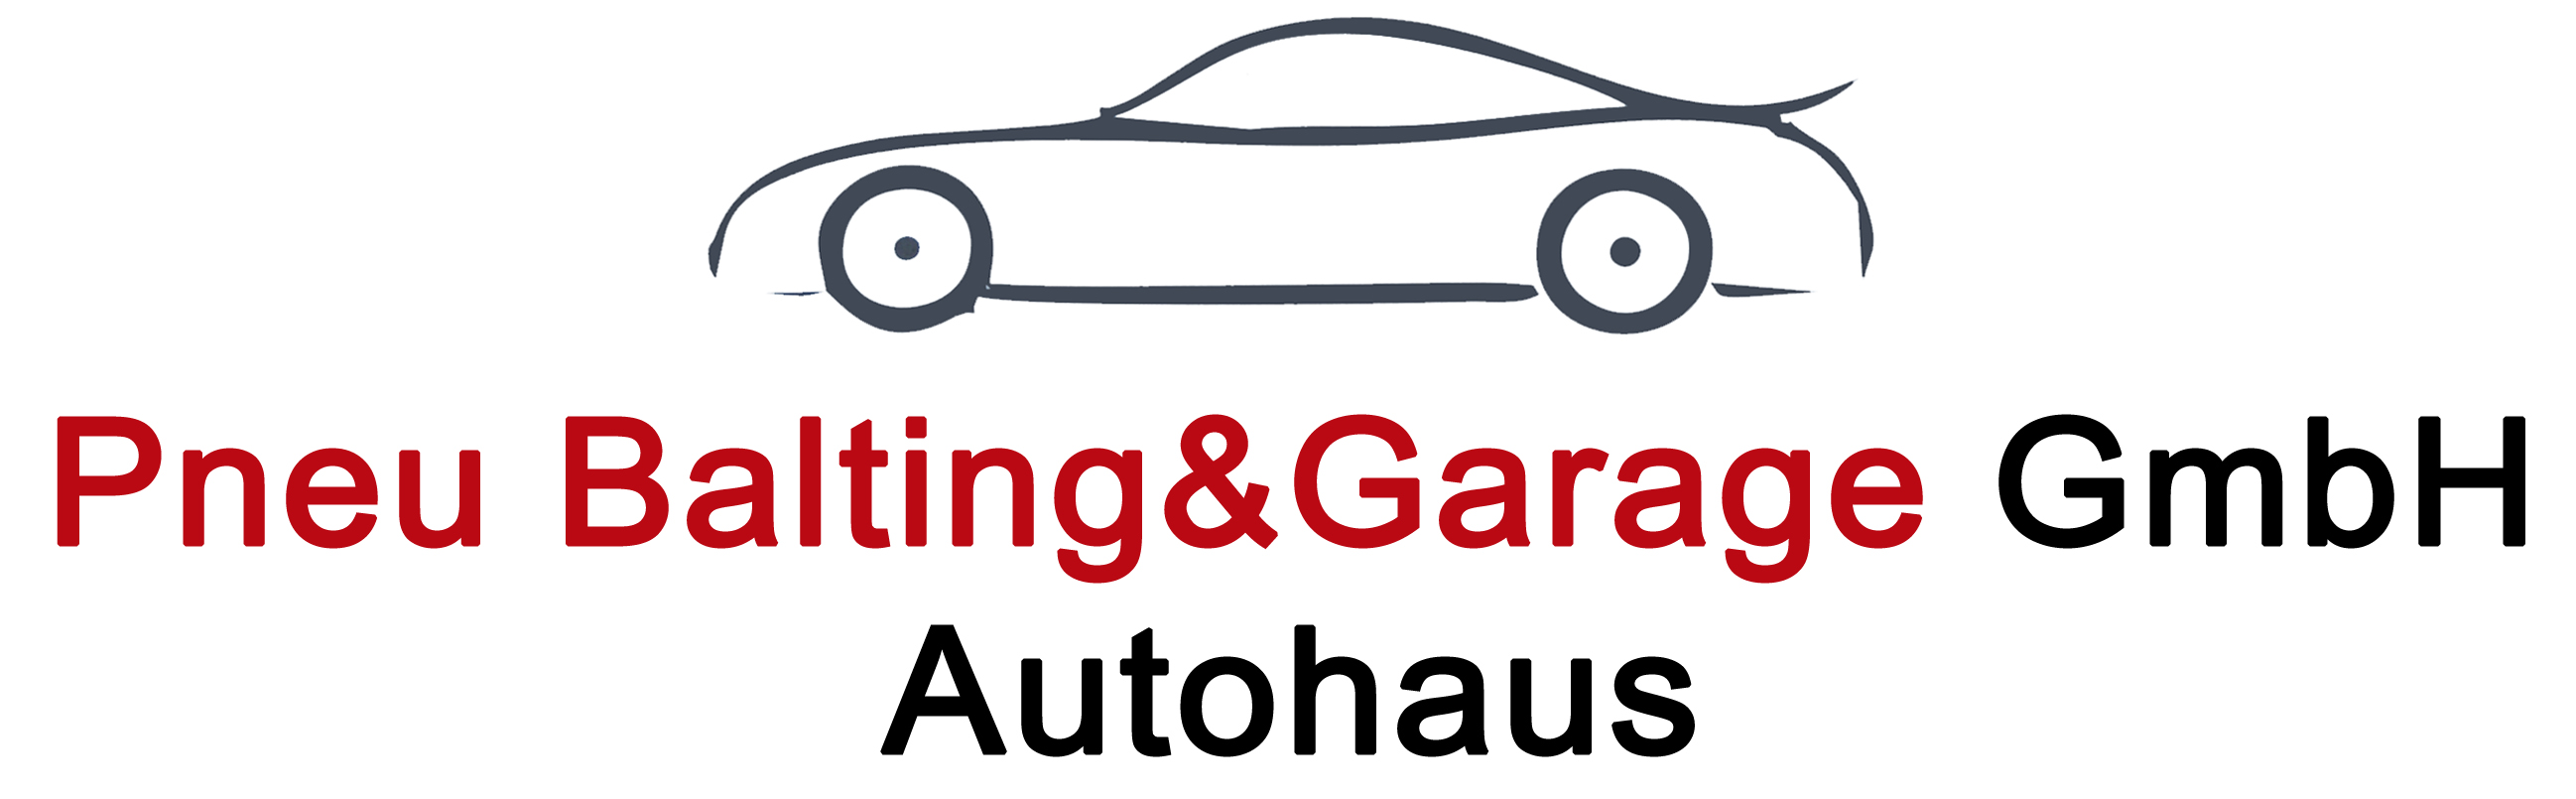 Pneu Balting Garage GmbH